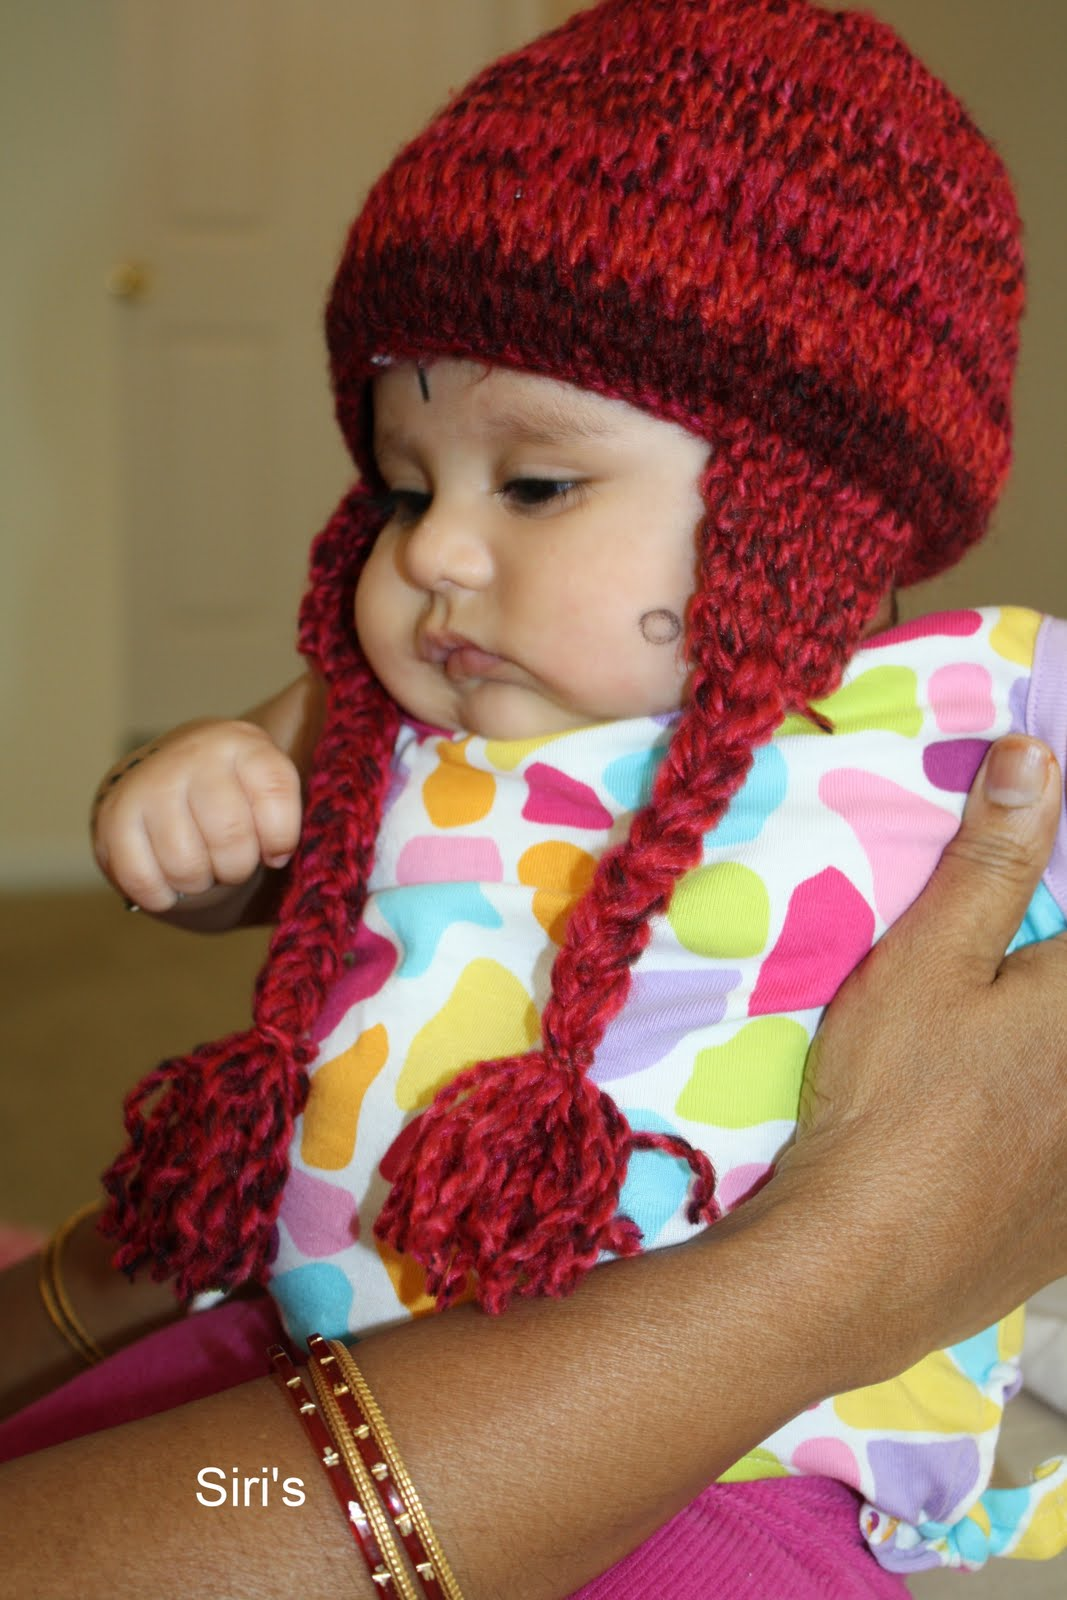 49d98ffb552 Siri s Kitchen  Crochet baby hat with ear flaps and plaits